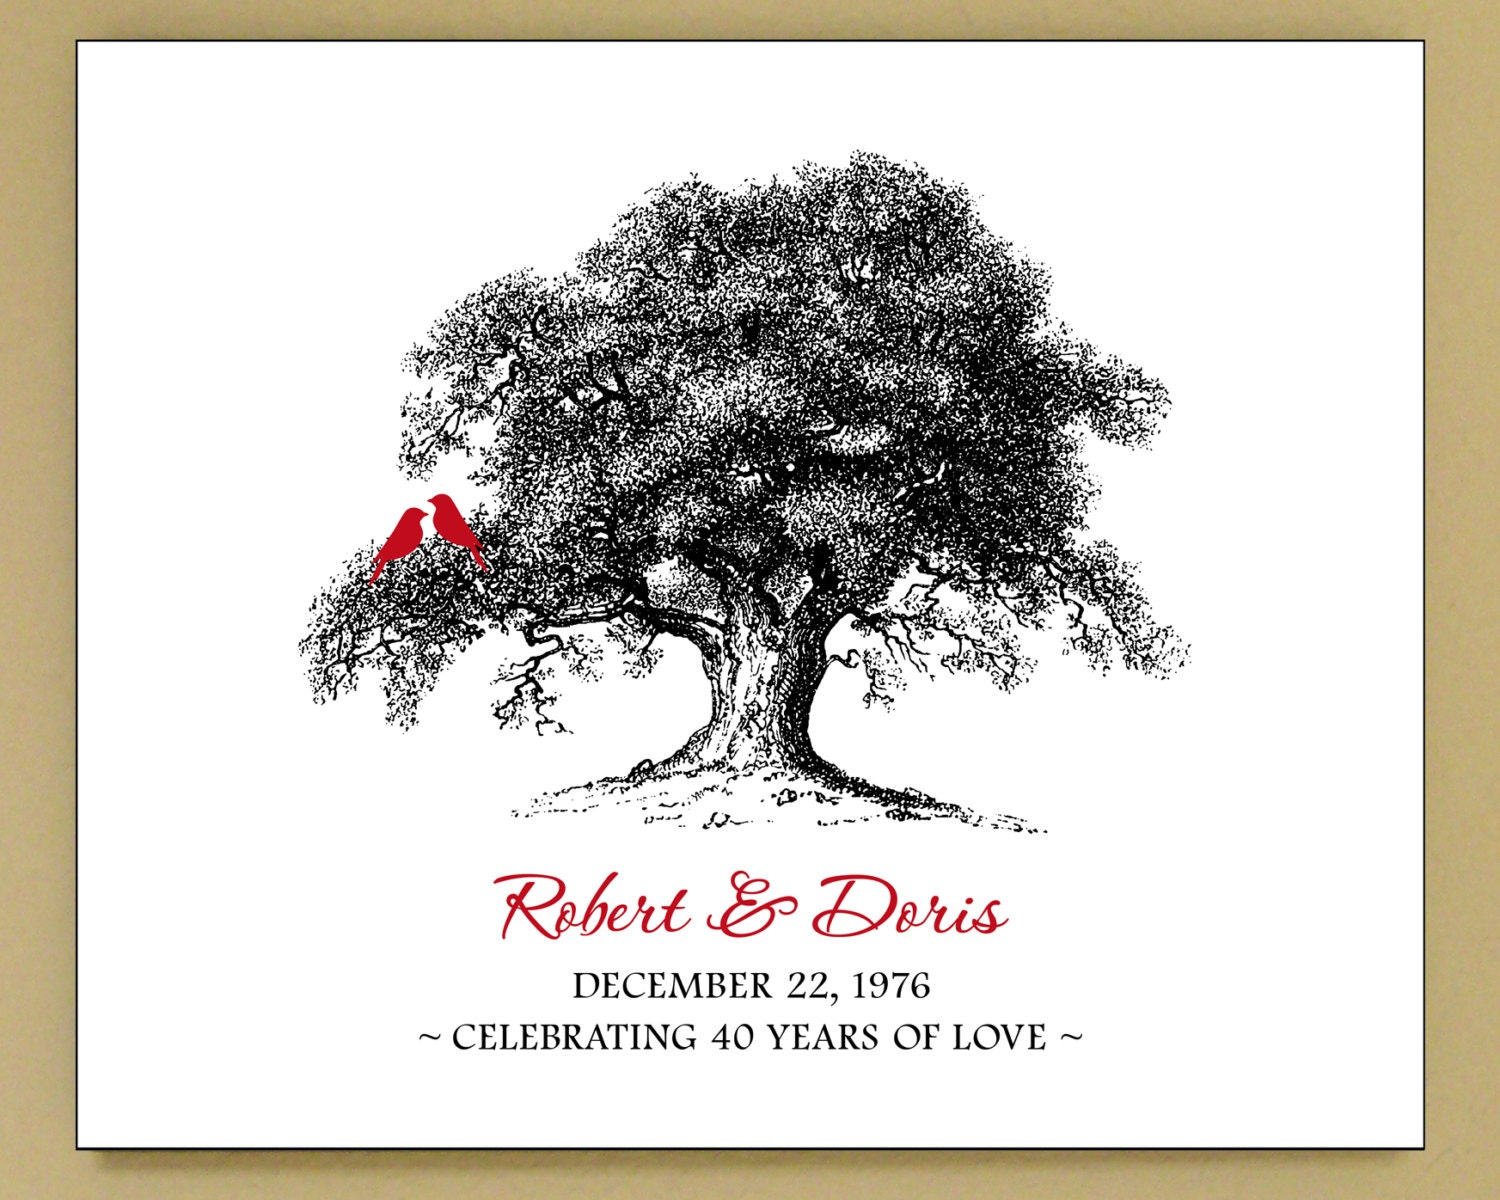 What Gift For 40th Wedding Anniversary: 40th Wedding Anniversary Gift For Parents / Mom & Dad 40